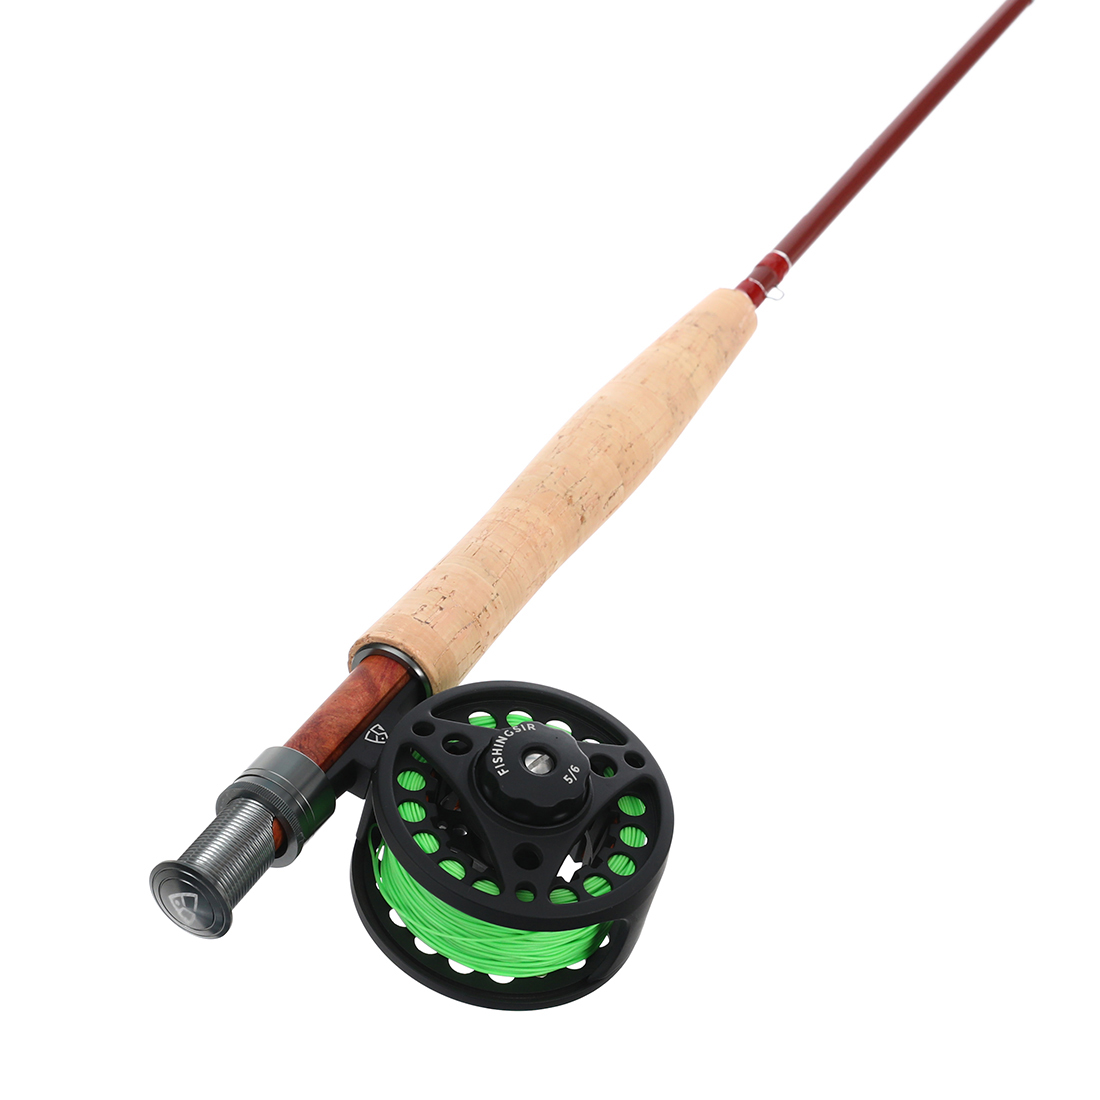 fly fishing rods - HD1100×1100